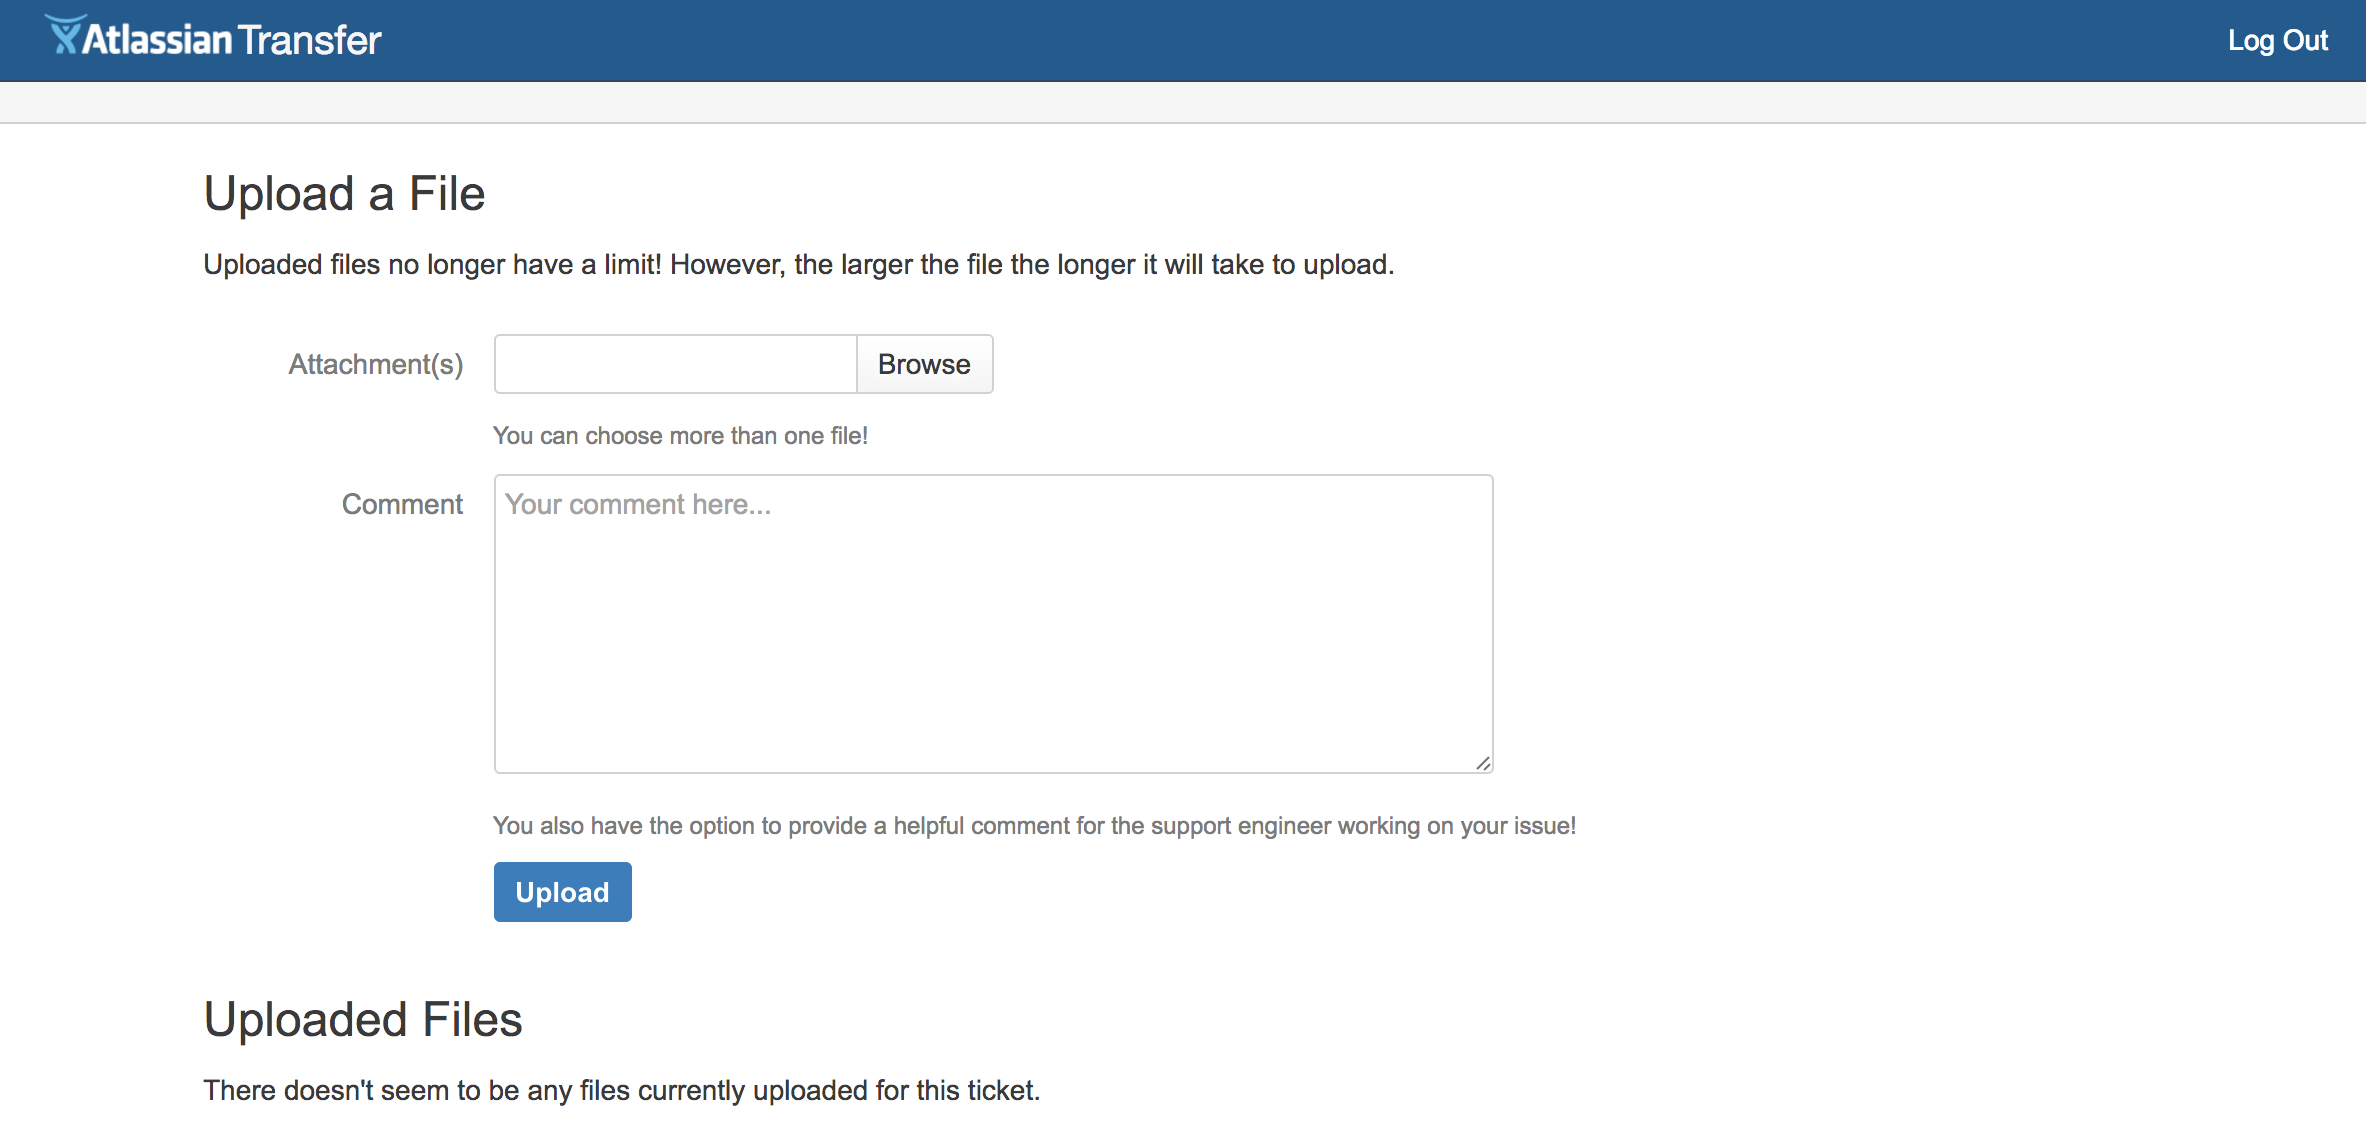 How to Transfer Large Files to Atlassian - Atlassian